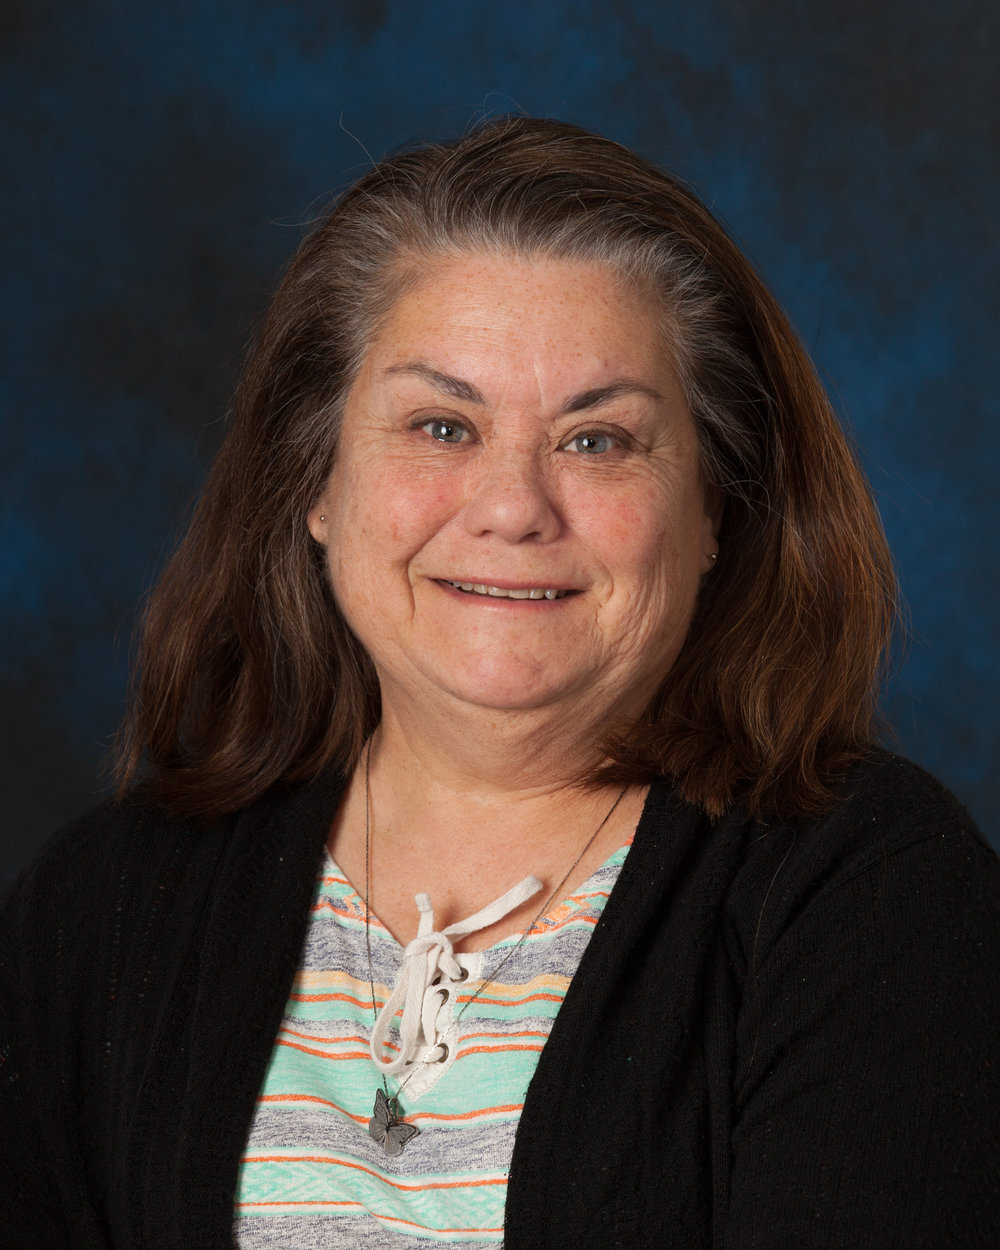 DONNA CAIRES, LMSW SOCIAL WORK THERAPIST